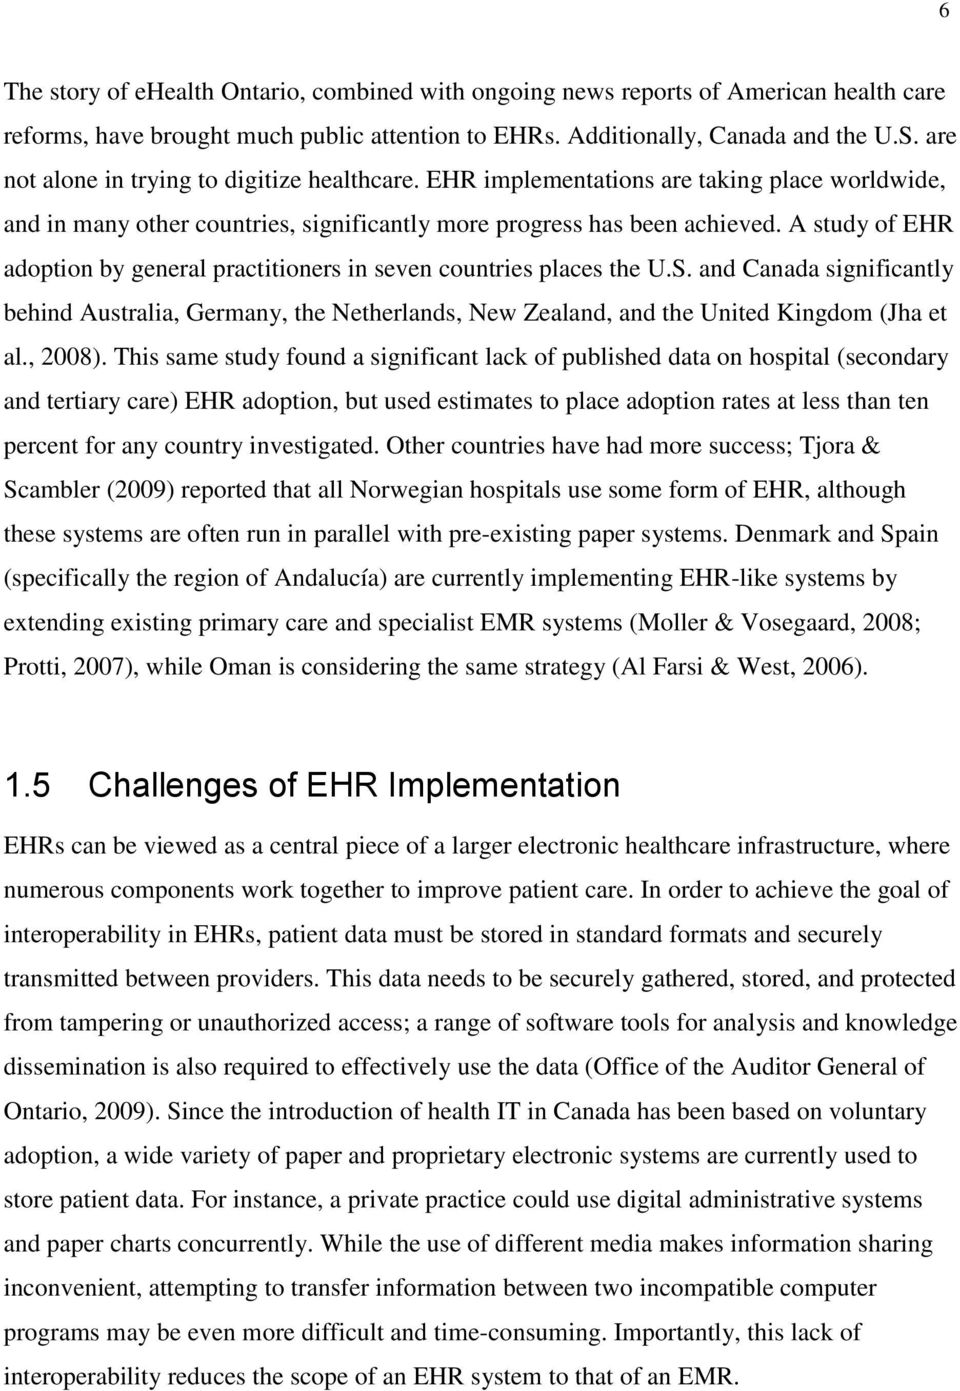 A study of EHR adoption by general practitioners in seven countries places the U.S. and Canada significantly behind Australia, Germany, the Netherlands, New Zealand, and the United Kingdom (Jha et al.